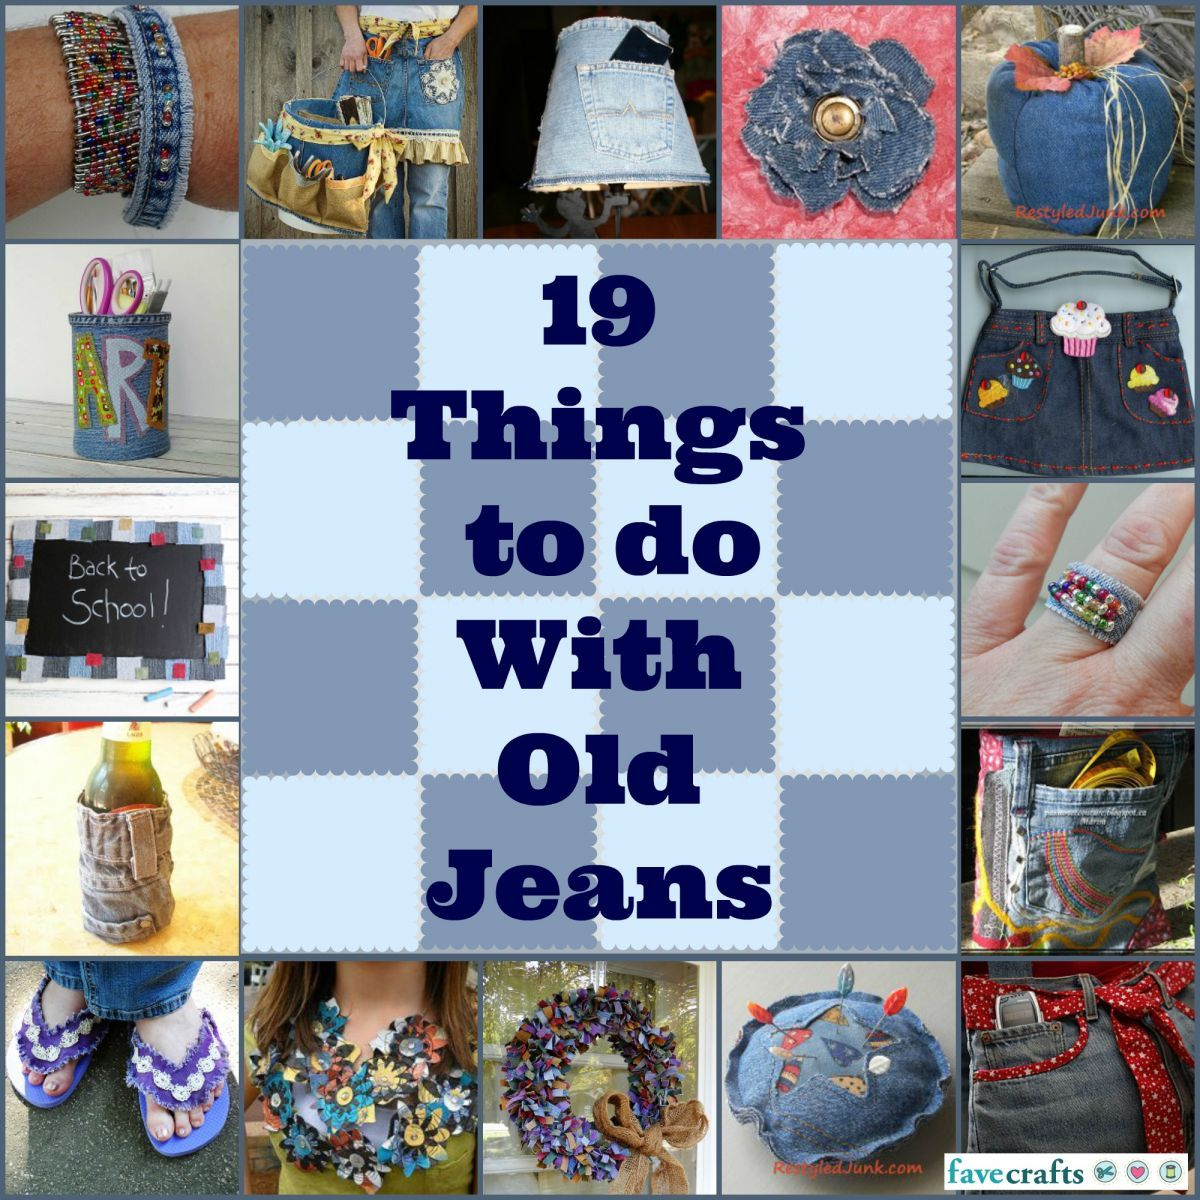 What To Do With Old Jeans: 34 Recycled Crafts With Denim | Knitting ...